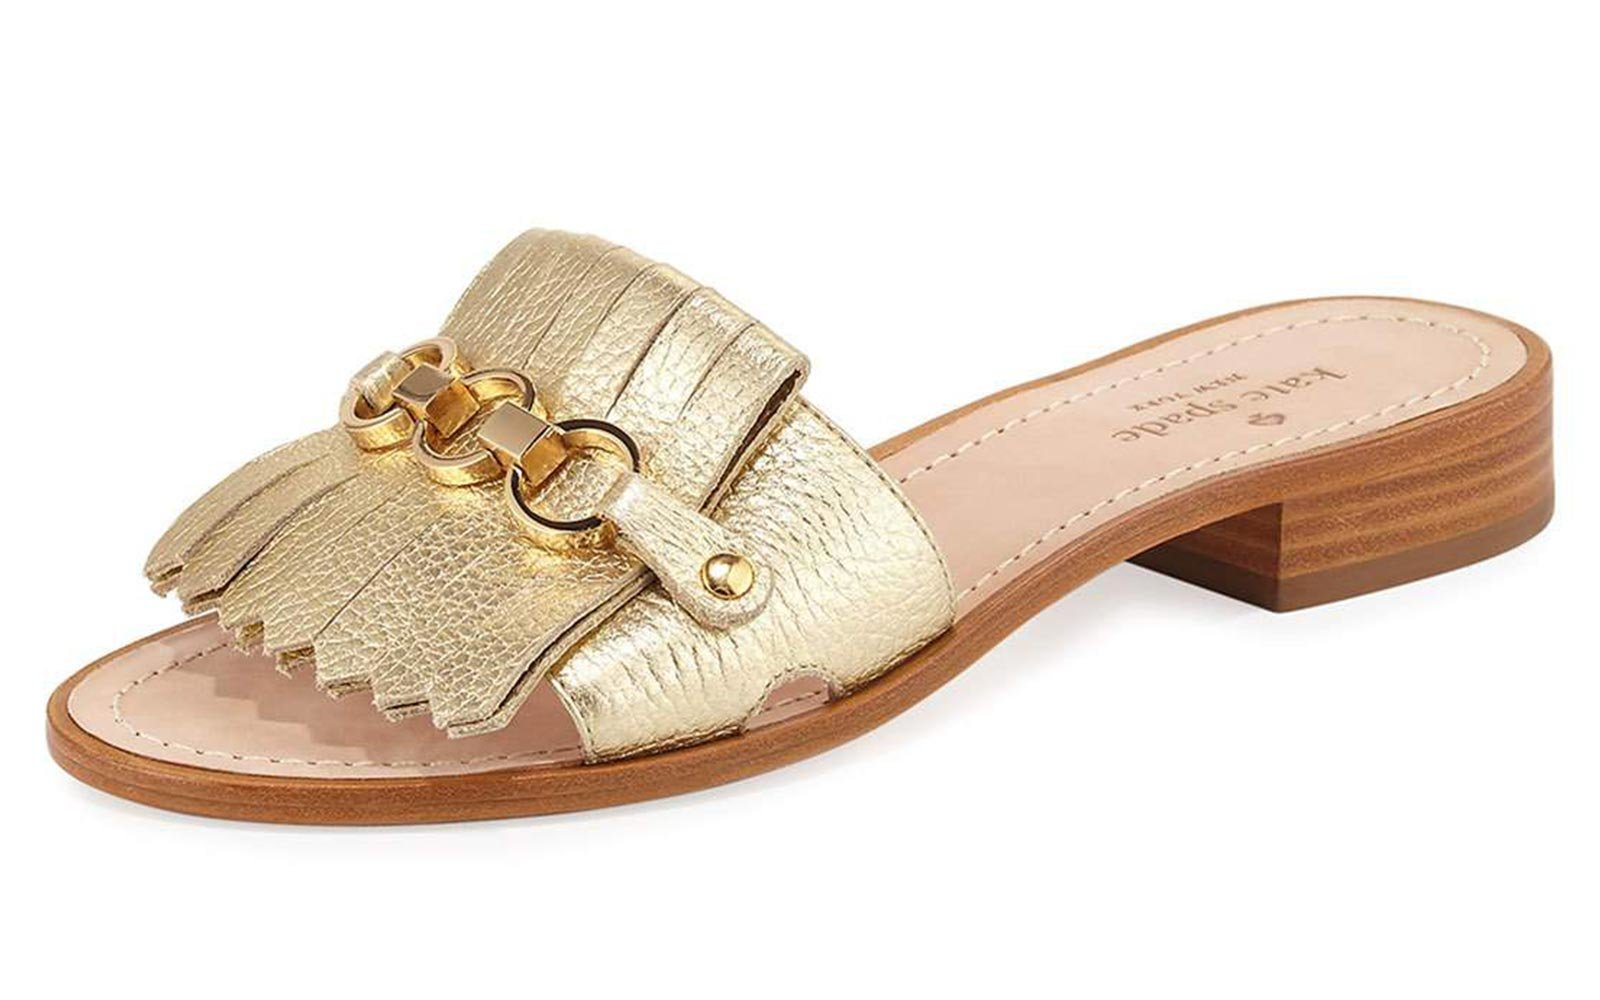 7cf8a754c Kate Spade Shoes Nwot Sandals In Gold Poshmark. The Best Beach Sandals For  Your Next Vacation Travel Leisure